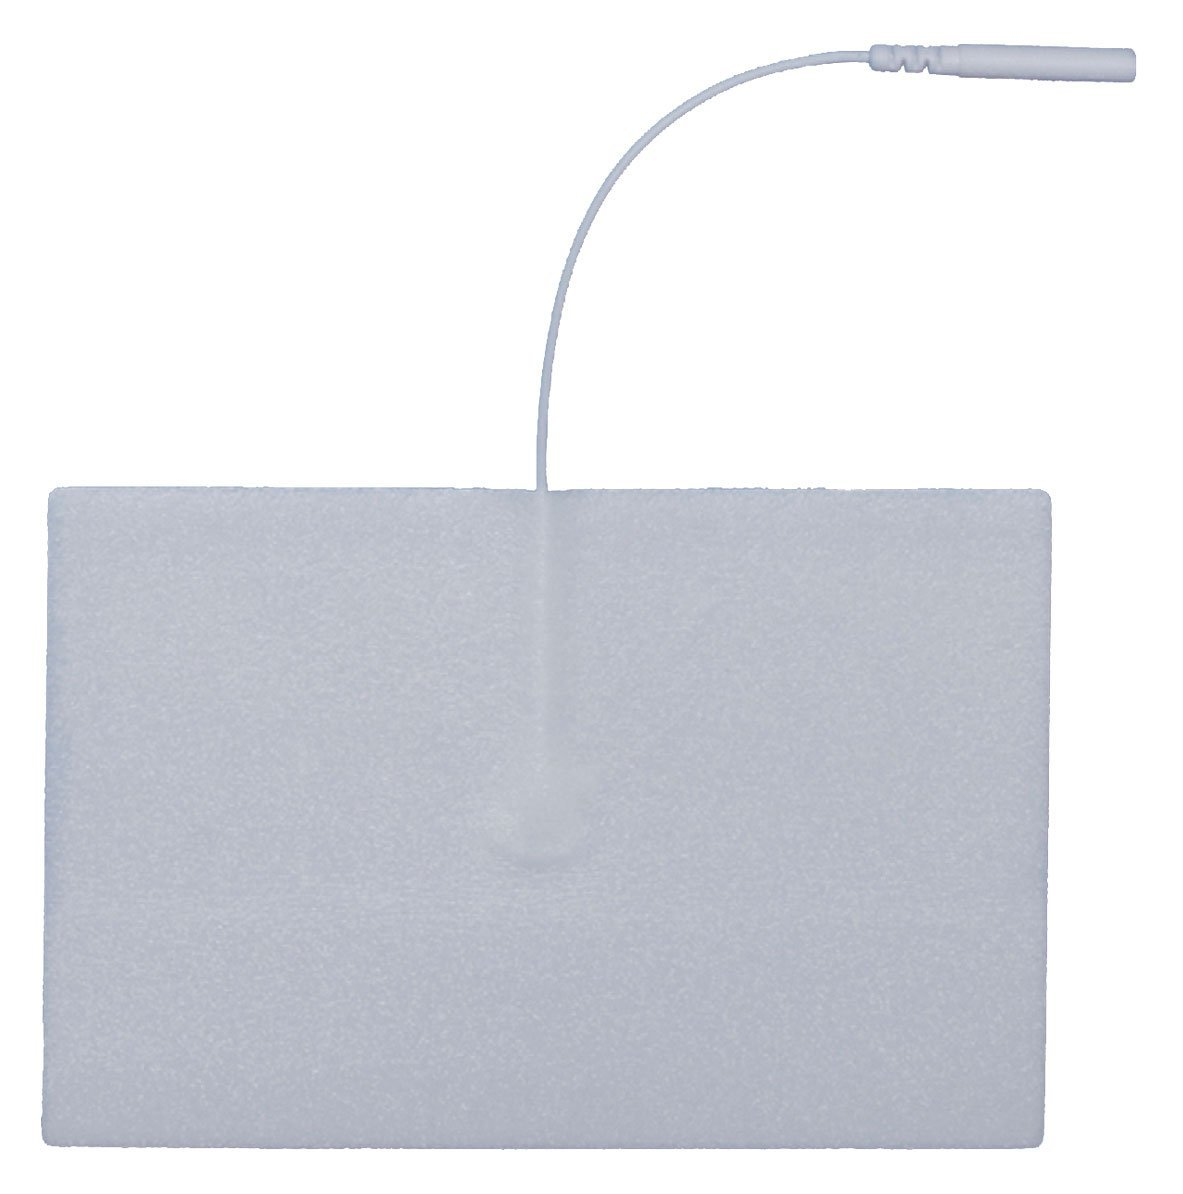 Balego® Silver Foam Electrodes 3 in. x 5 in. Rectangle, 2/pack